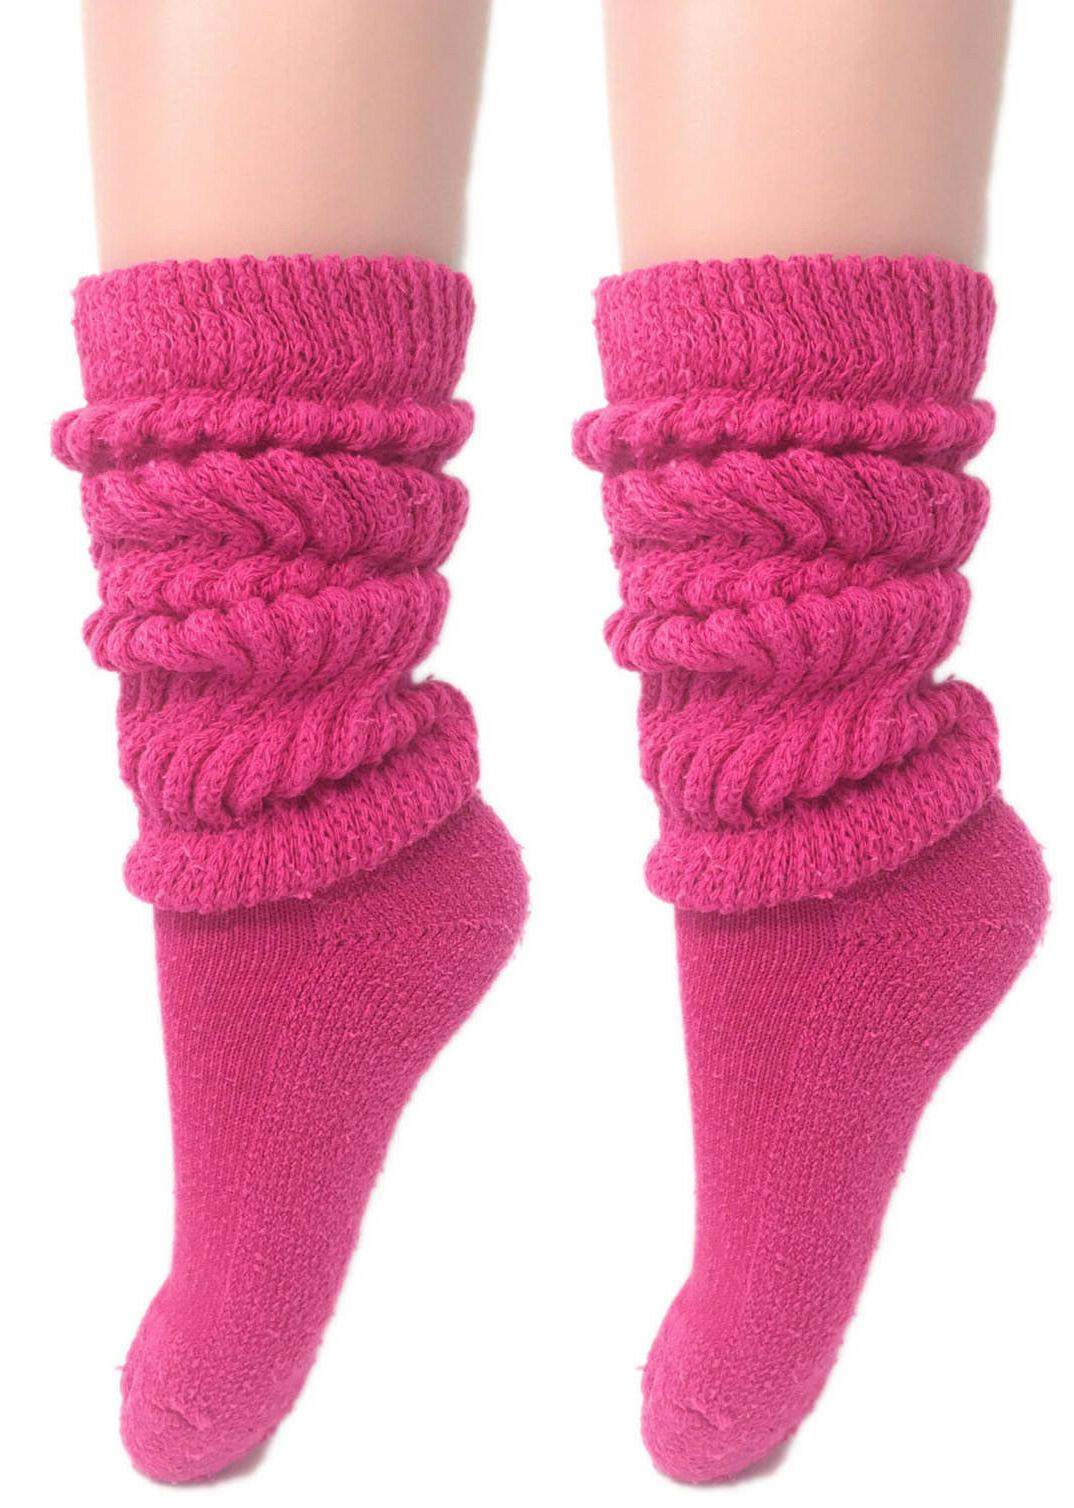 slouch socks women and men extra tall